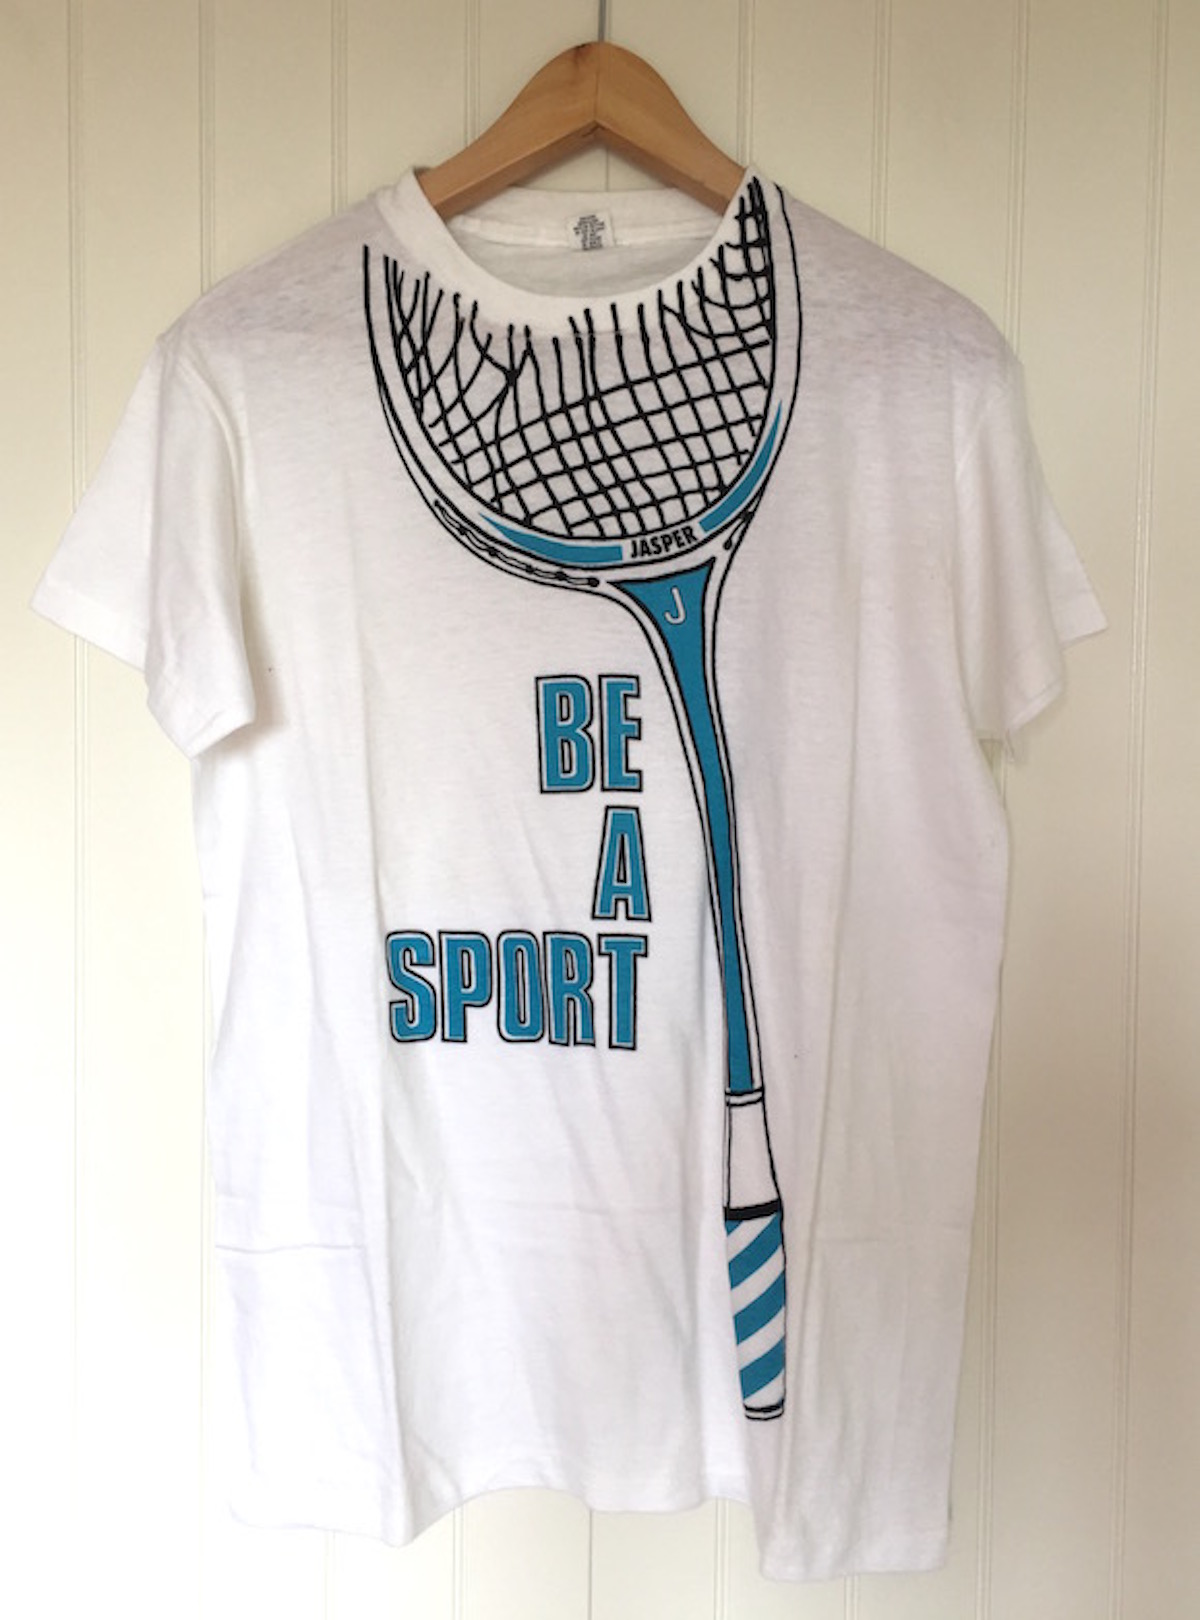 Be A Sport, t-shirt design Ian Harris for Jasper, 1979